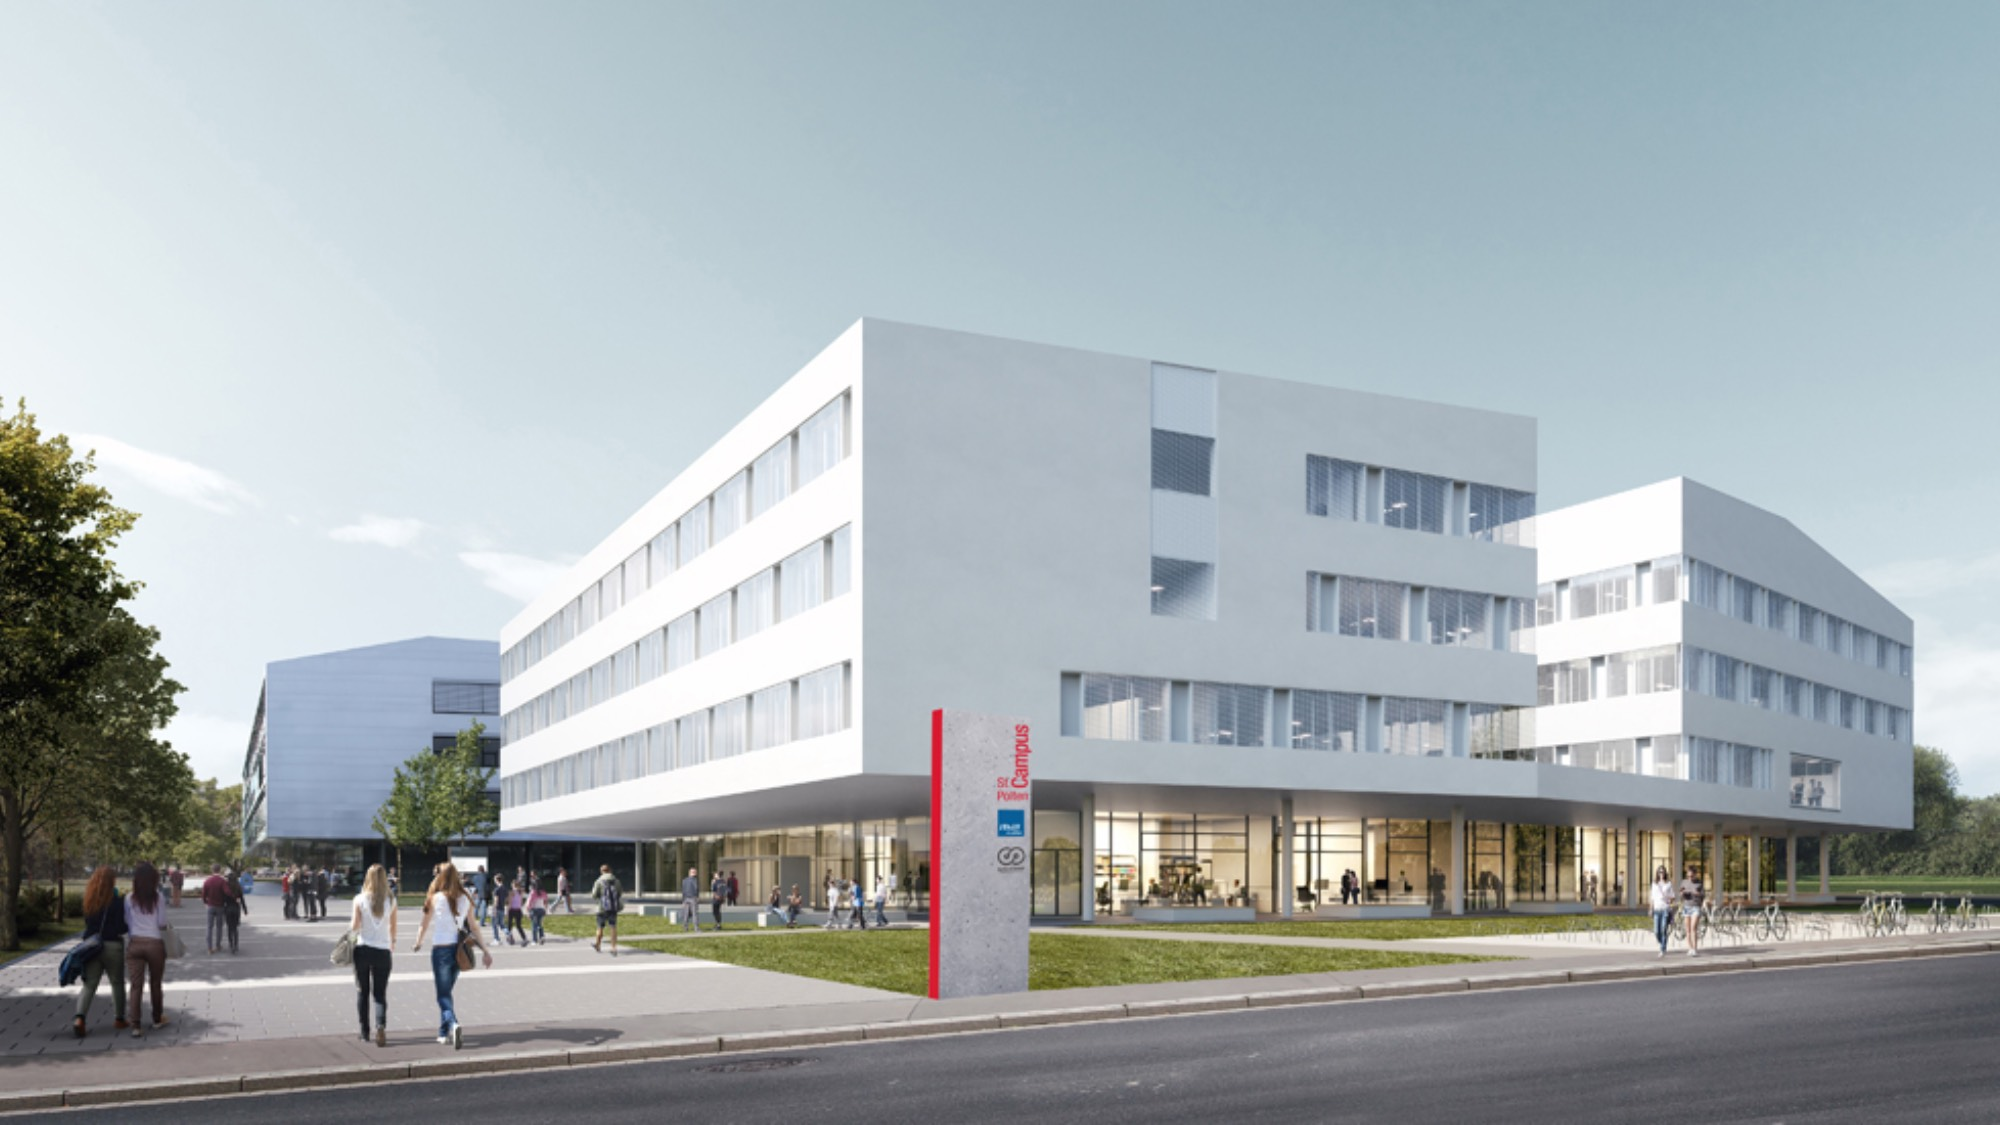 An illustration of the expanded St. Pölten university building